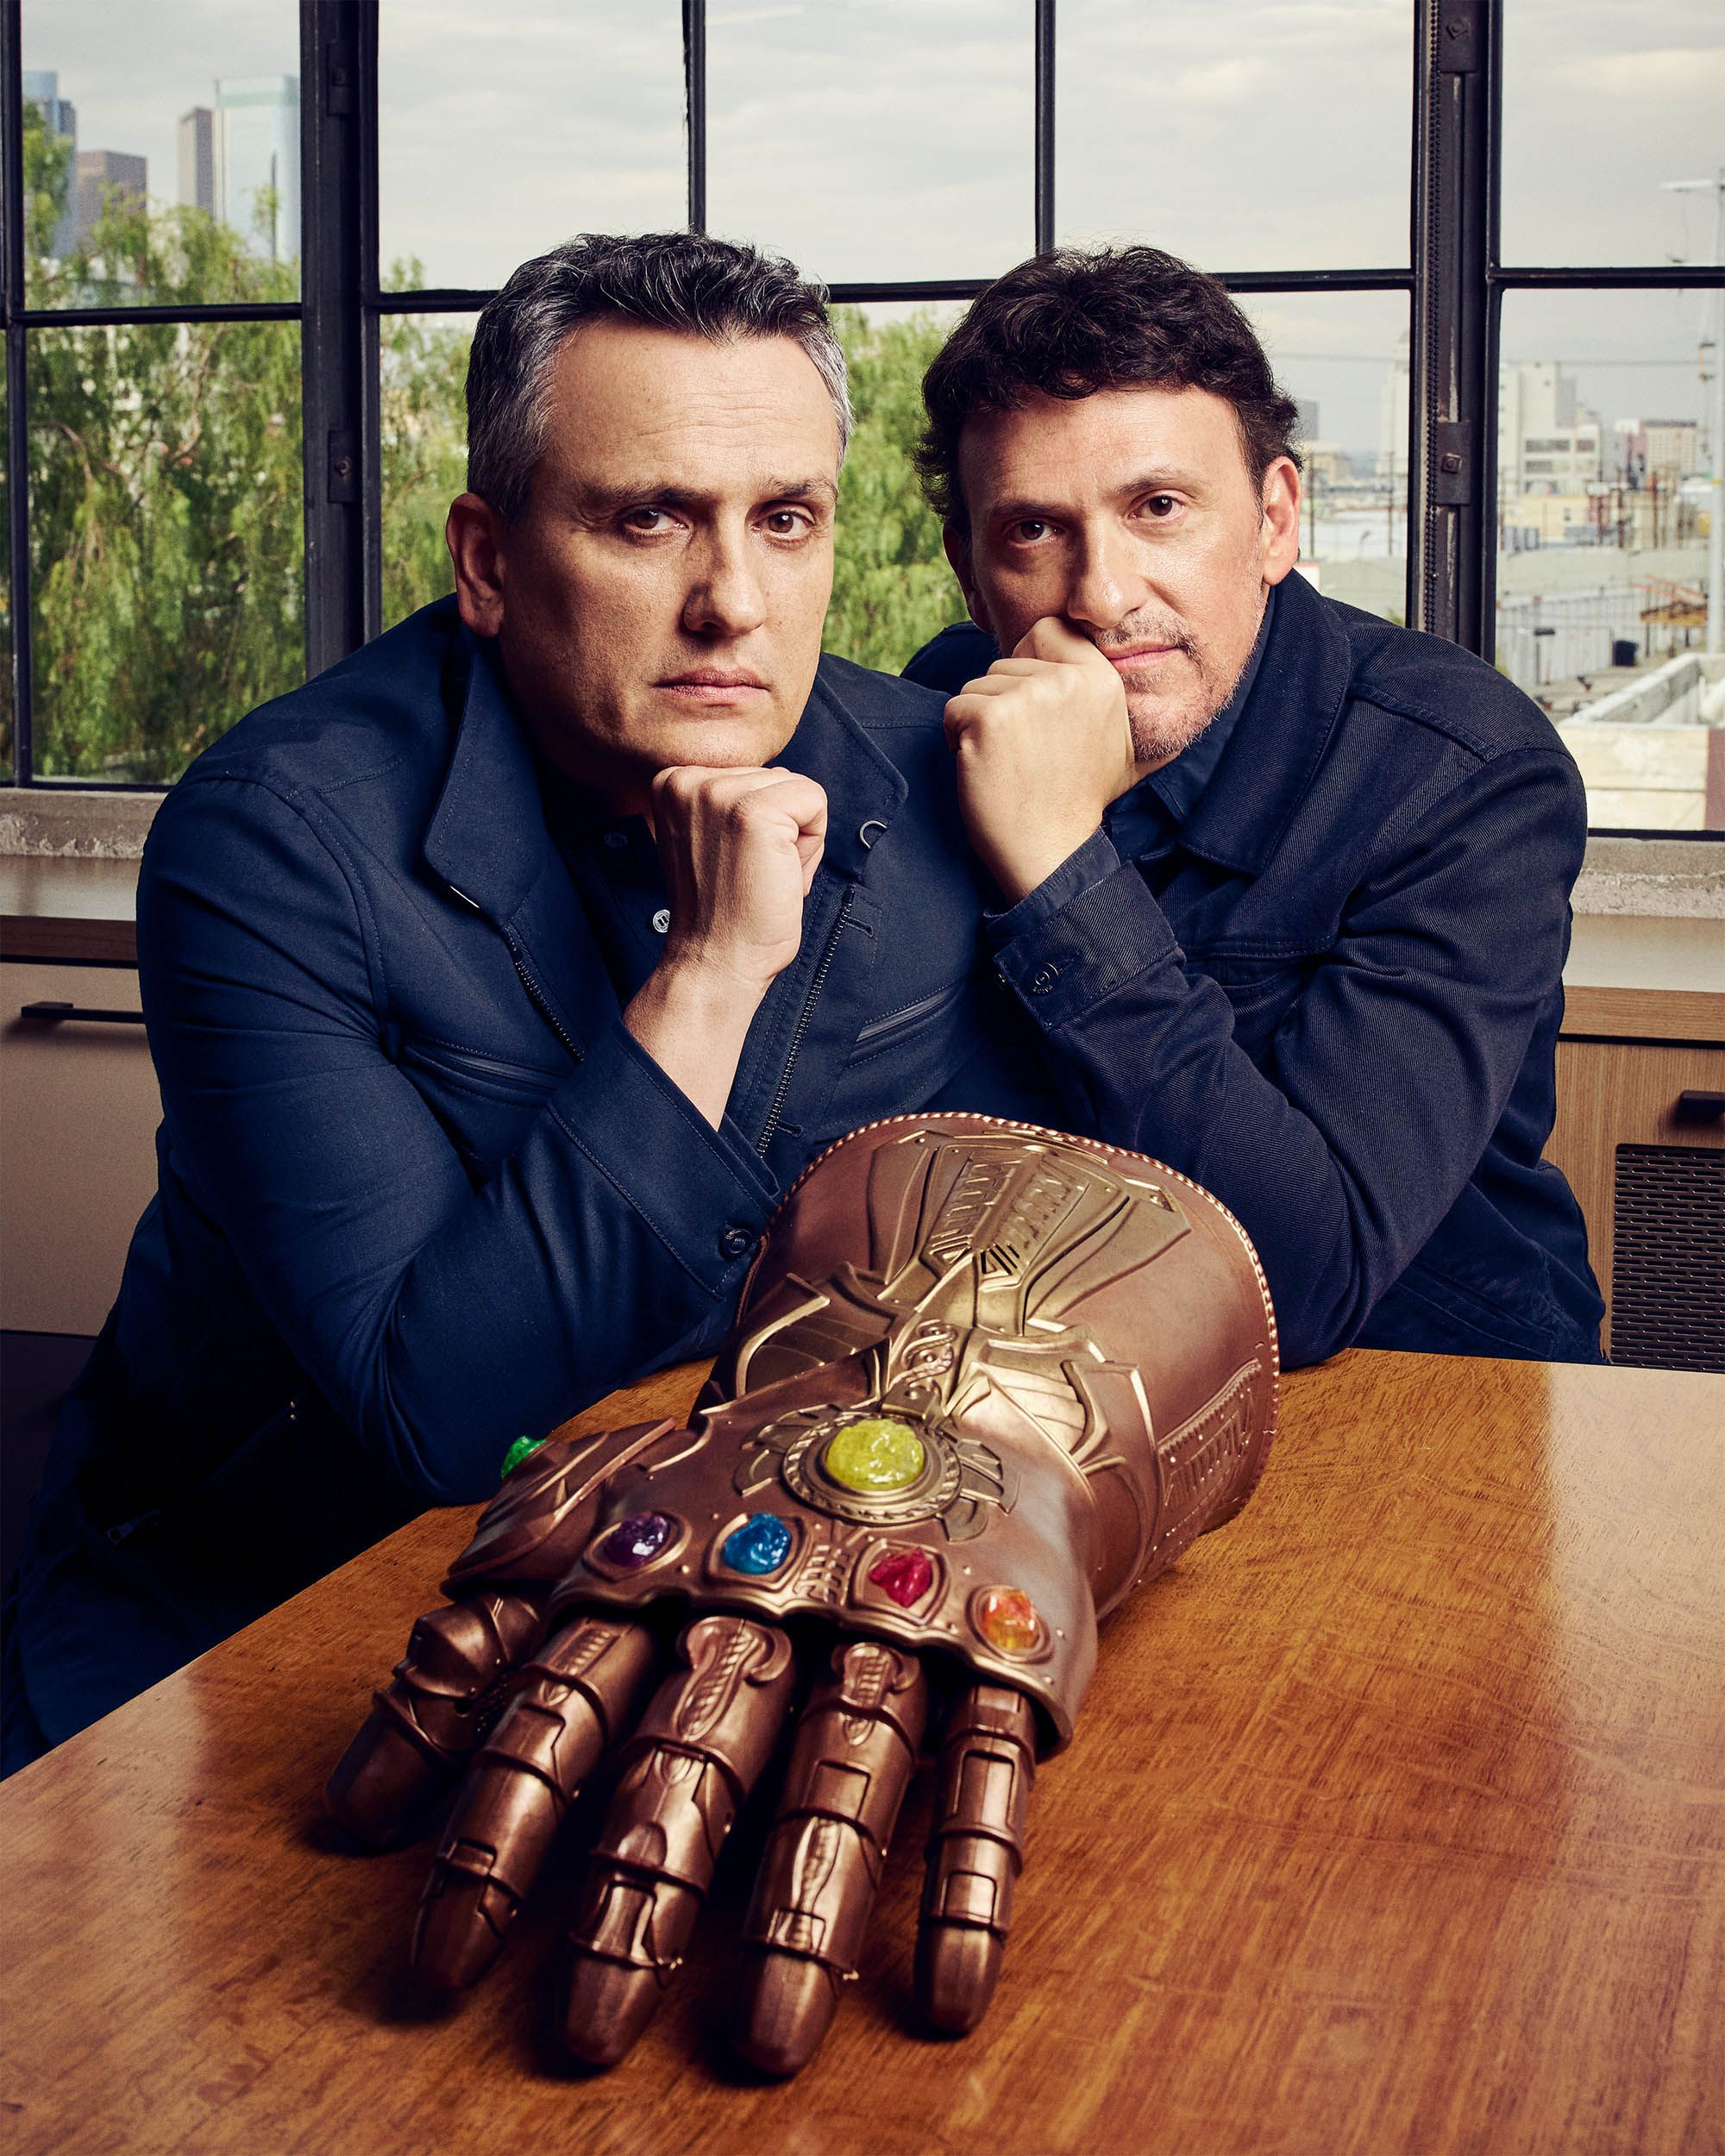 Joe and Anthony Russo, with Thanos's glove from Avengers: Infinity War , at their AGBO studio, Los Angeles. On Joe, left: John Varvatos jacket and trousers, his own; Louis Vuitton polo shirt, his own.